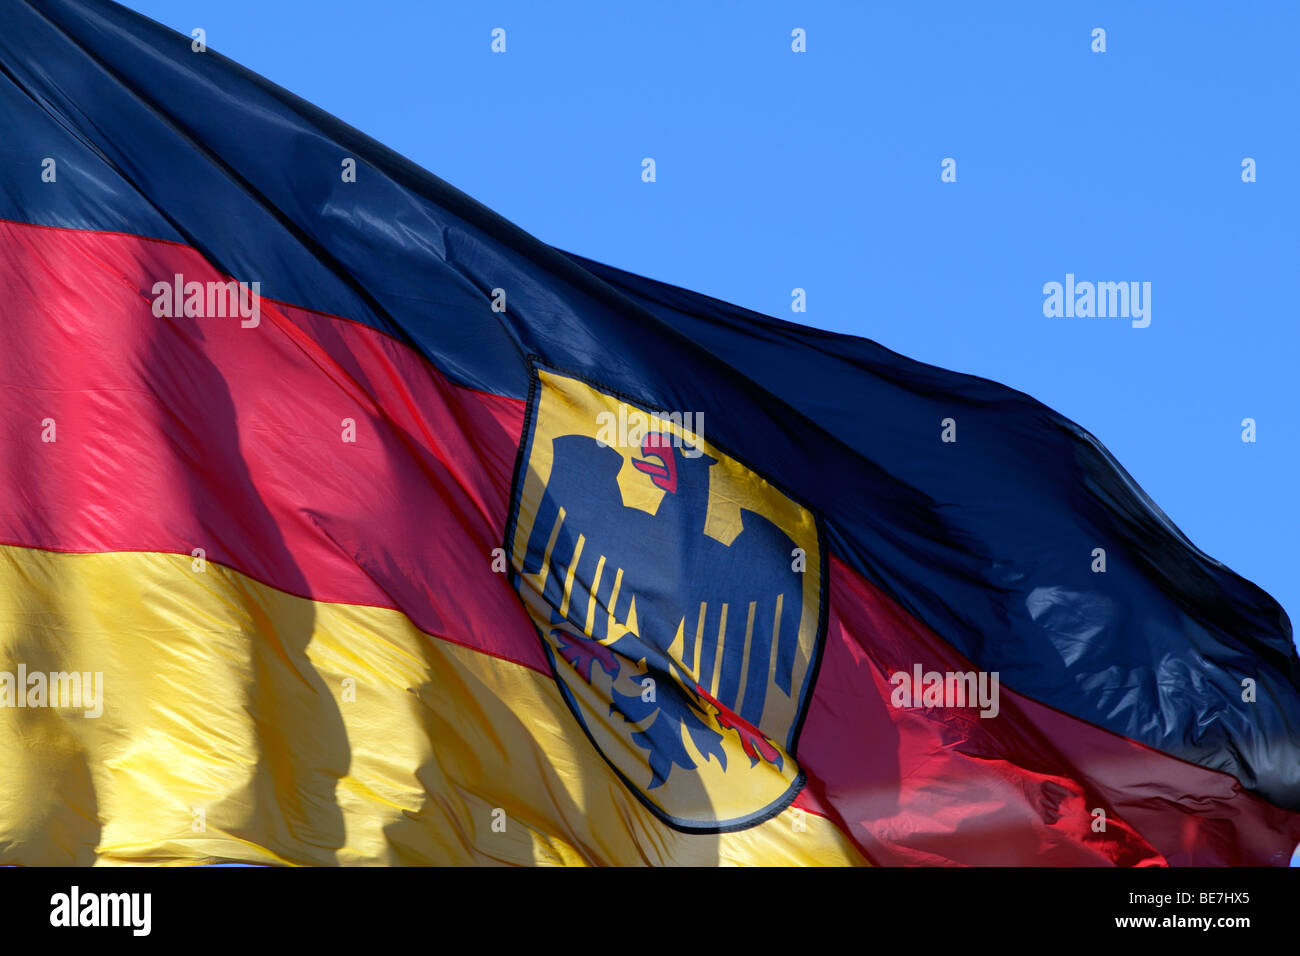 Berlin, the flag of the federal authorities of Germany. EU/DE/DEU/GER/Europe/Germany, capital Berlin, the flag of - Stock Image